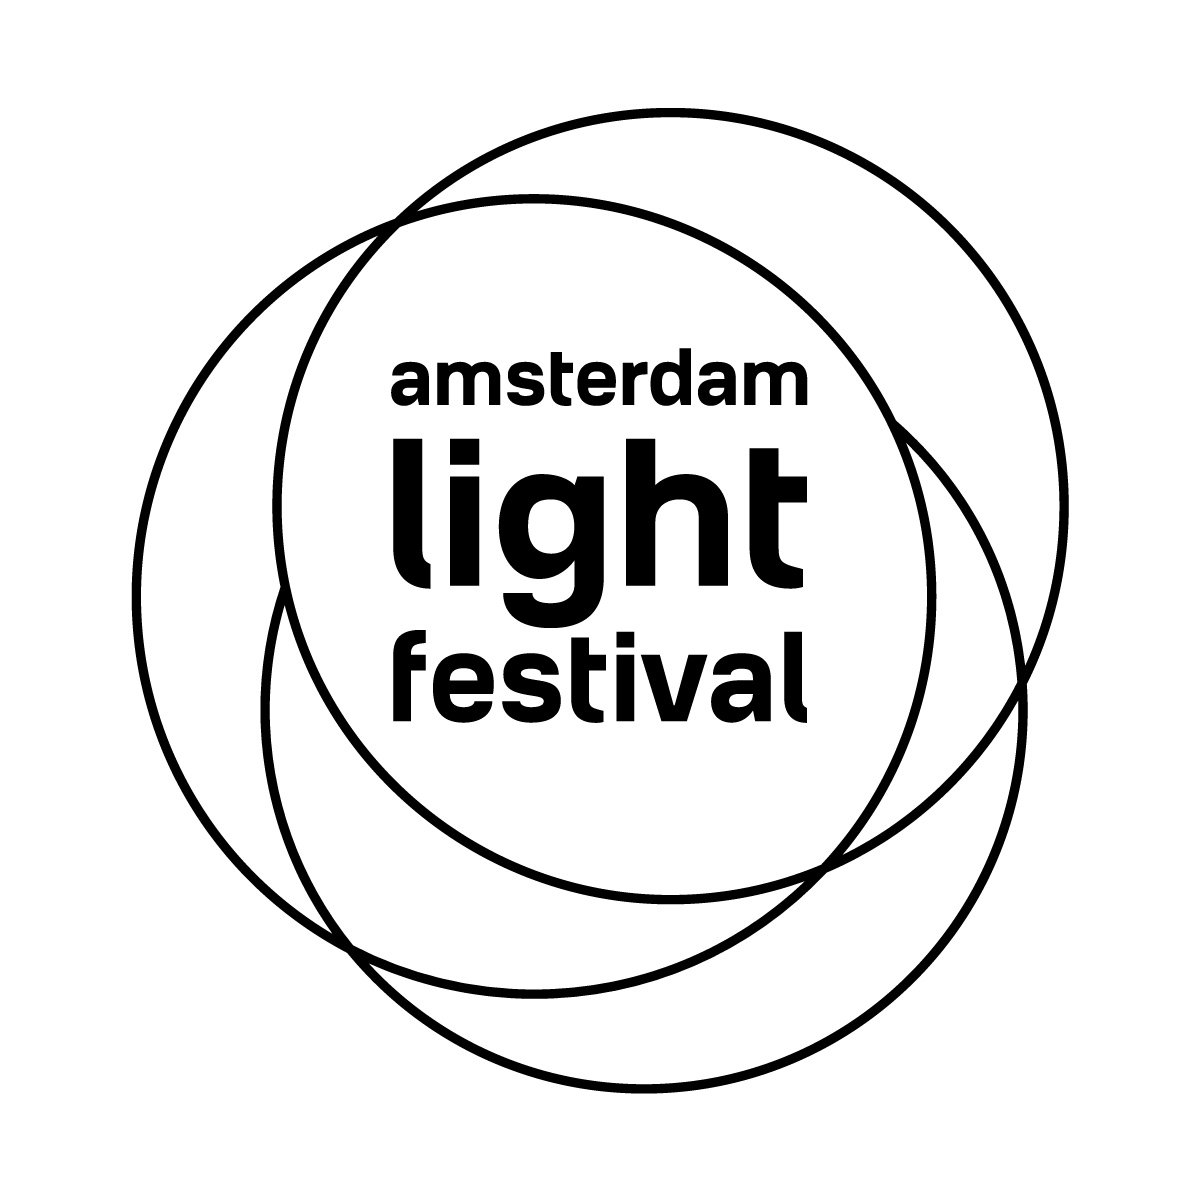 Amsterdam Light Festival - Call for Concepts